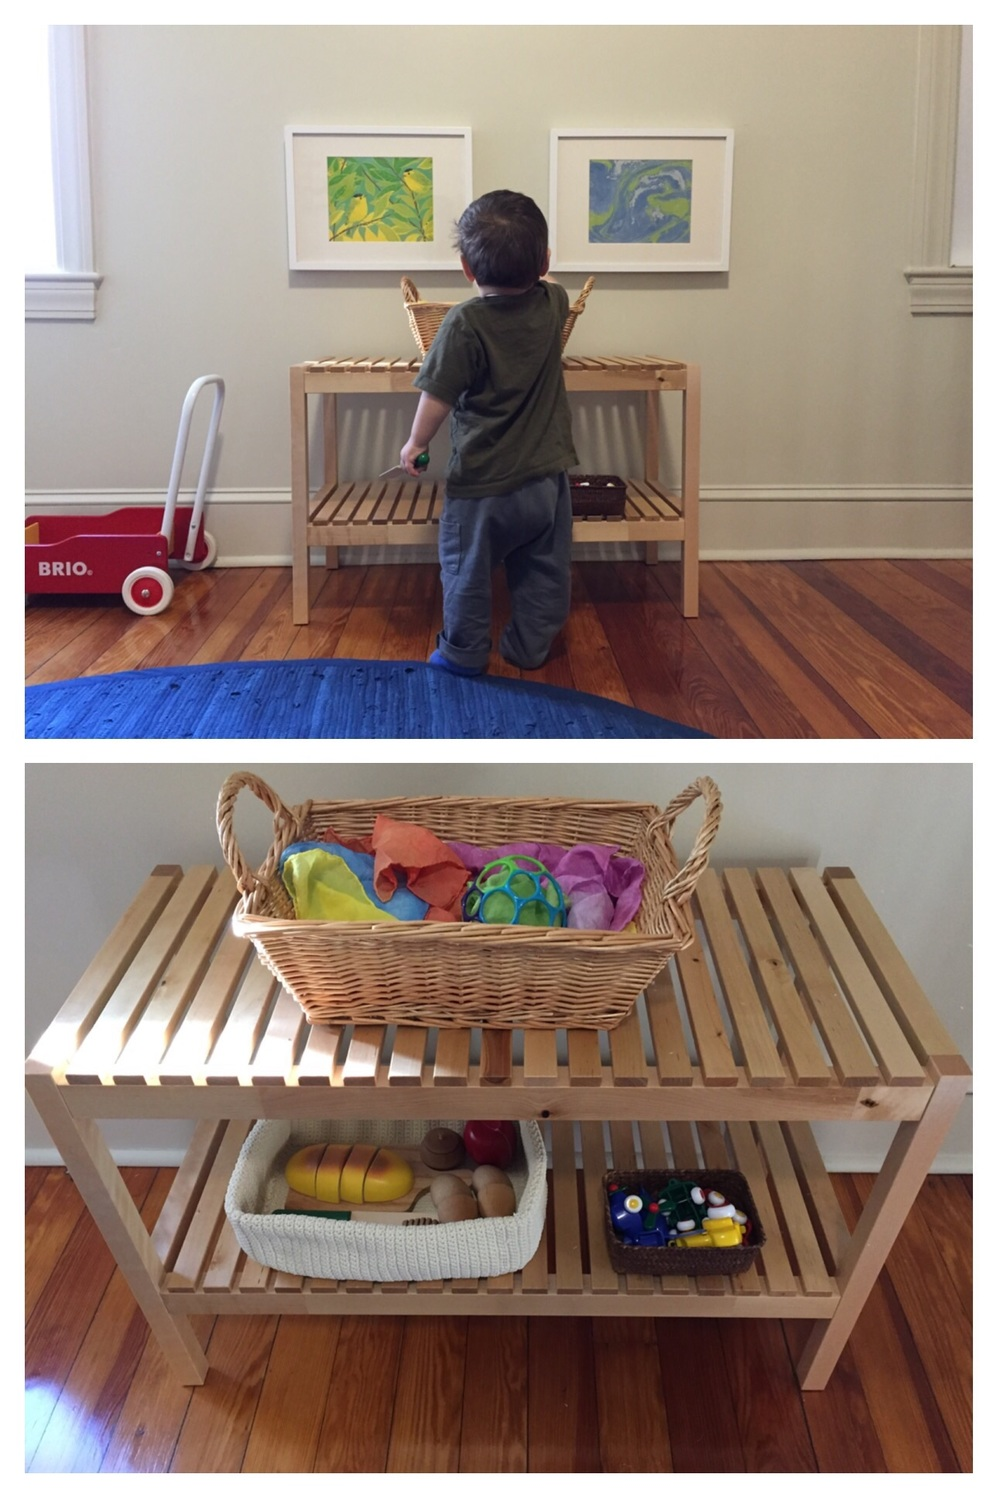 Fun, open-ended materials: play silks and an o-ball, play food, and some vehicles. The shelf is from IKEA.